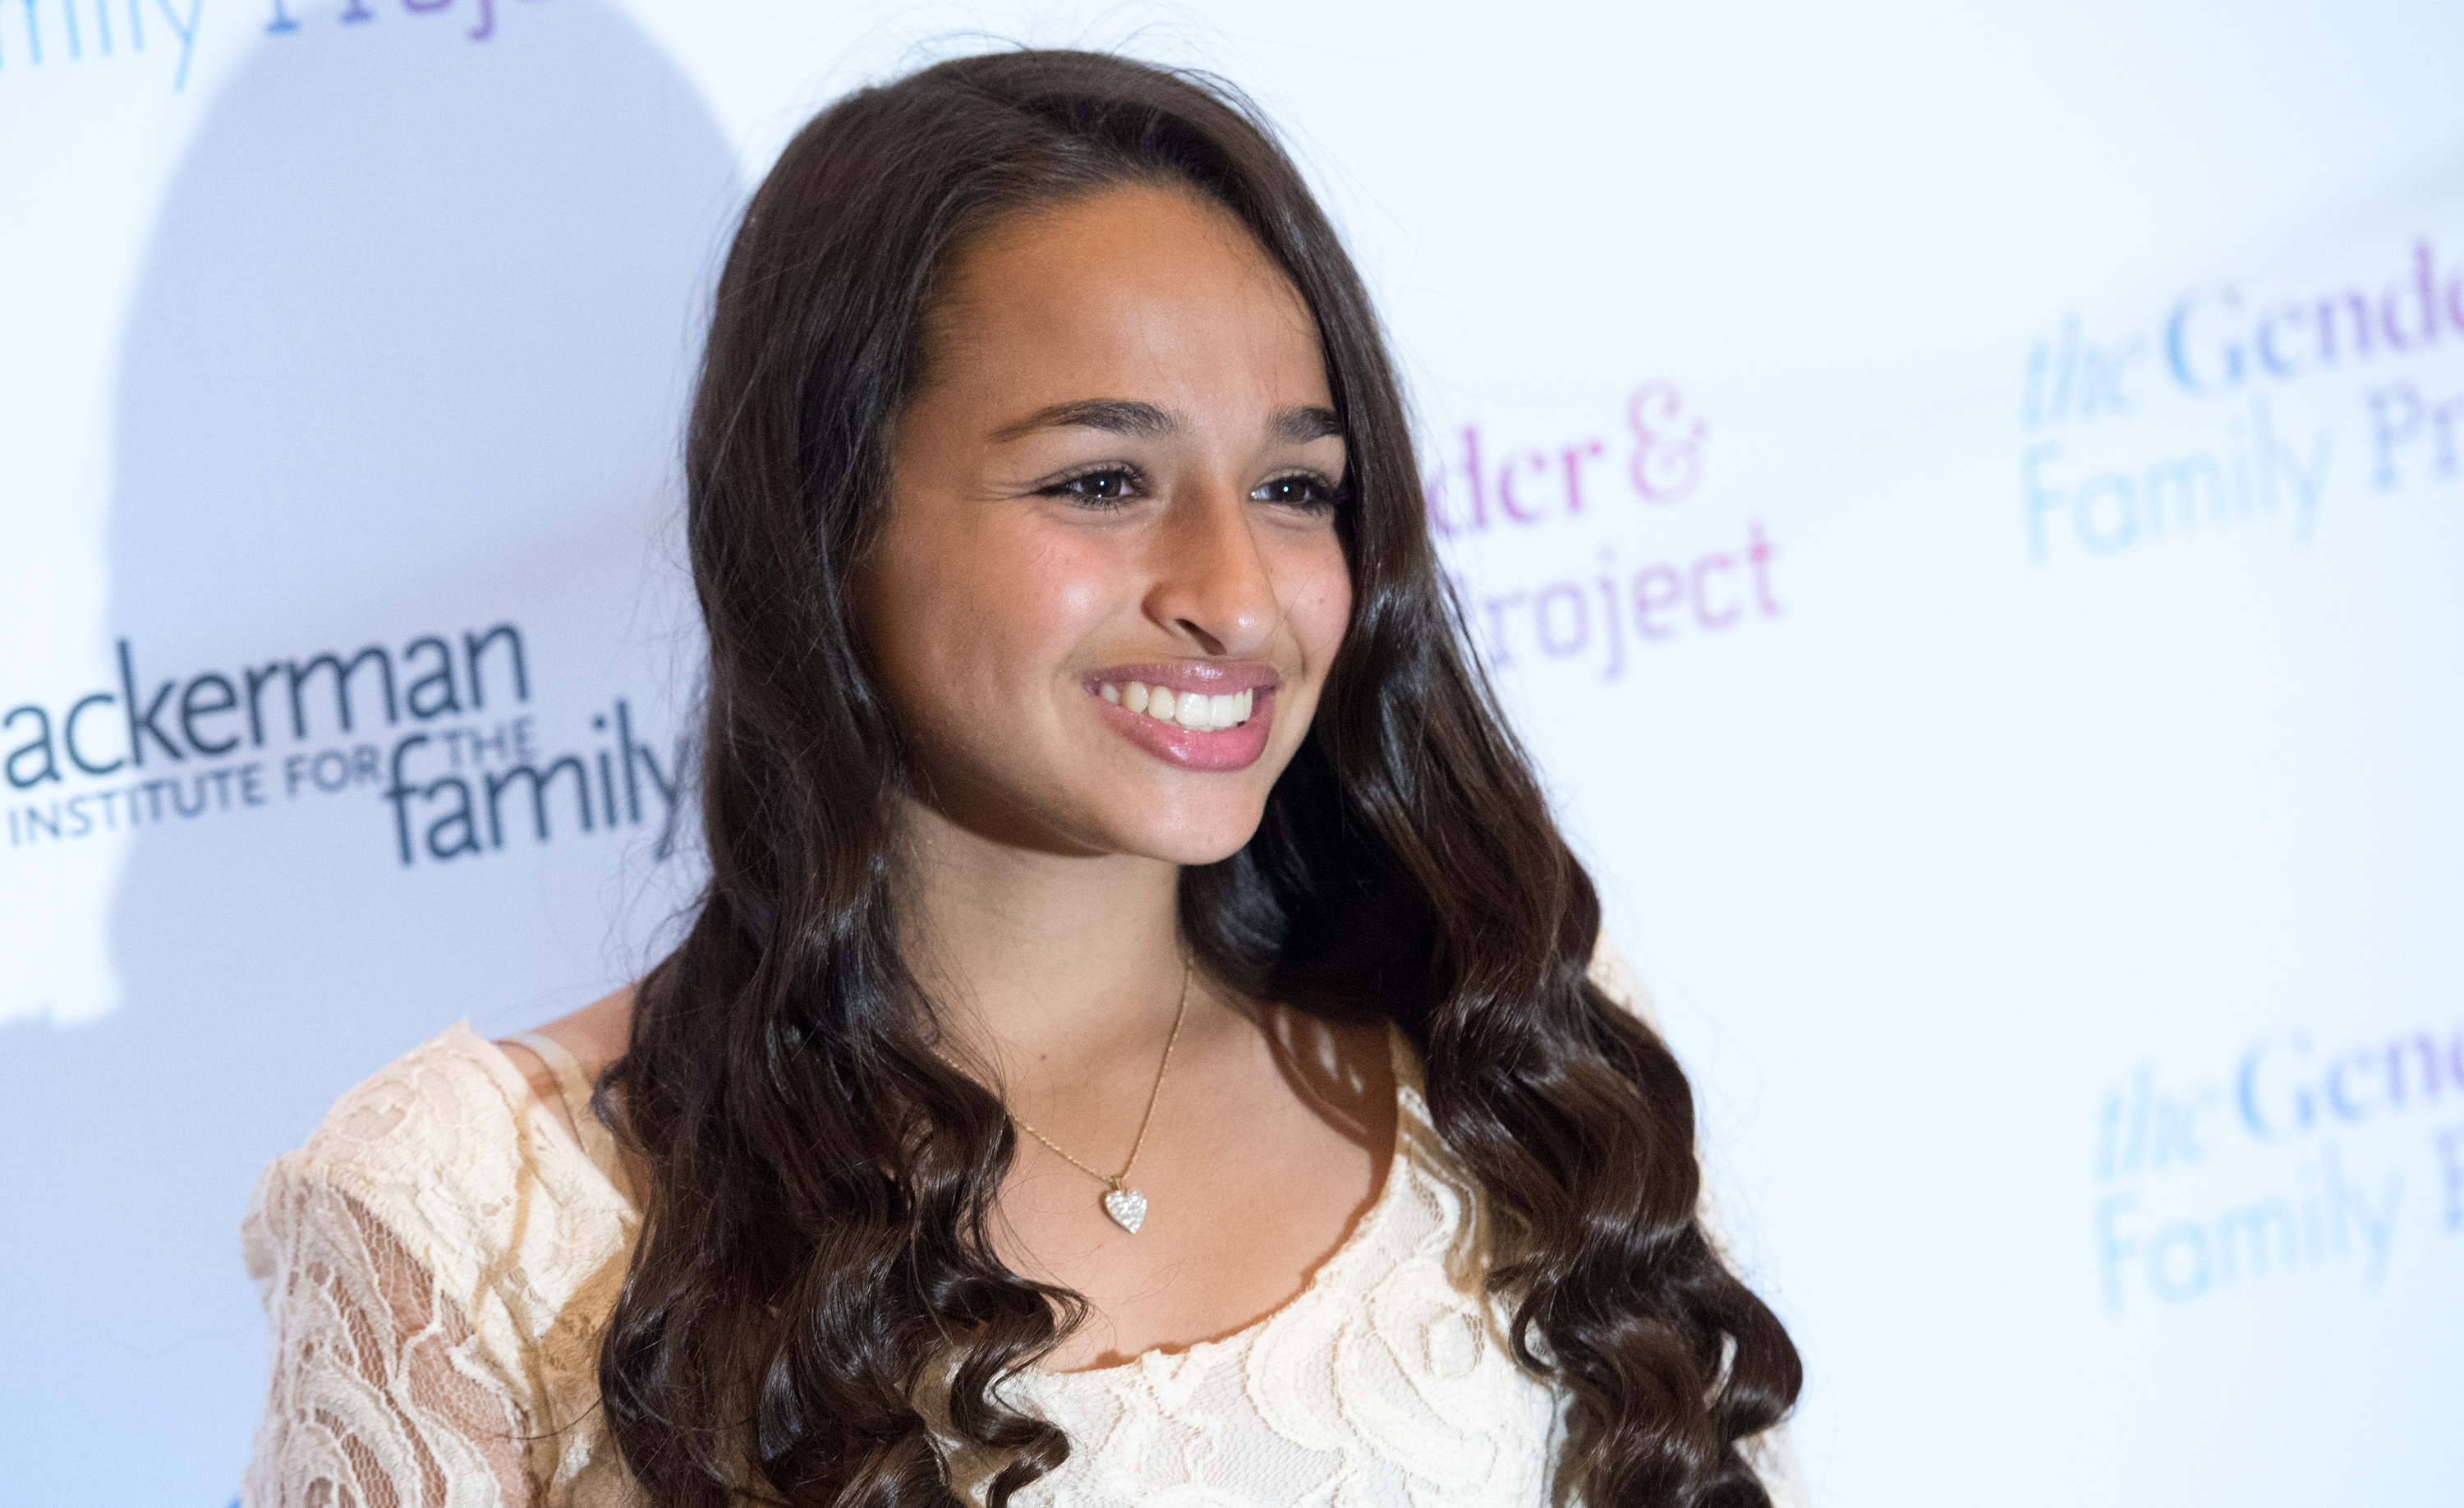 Activist Jazz Jennings in New York City on March 23, 2015.